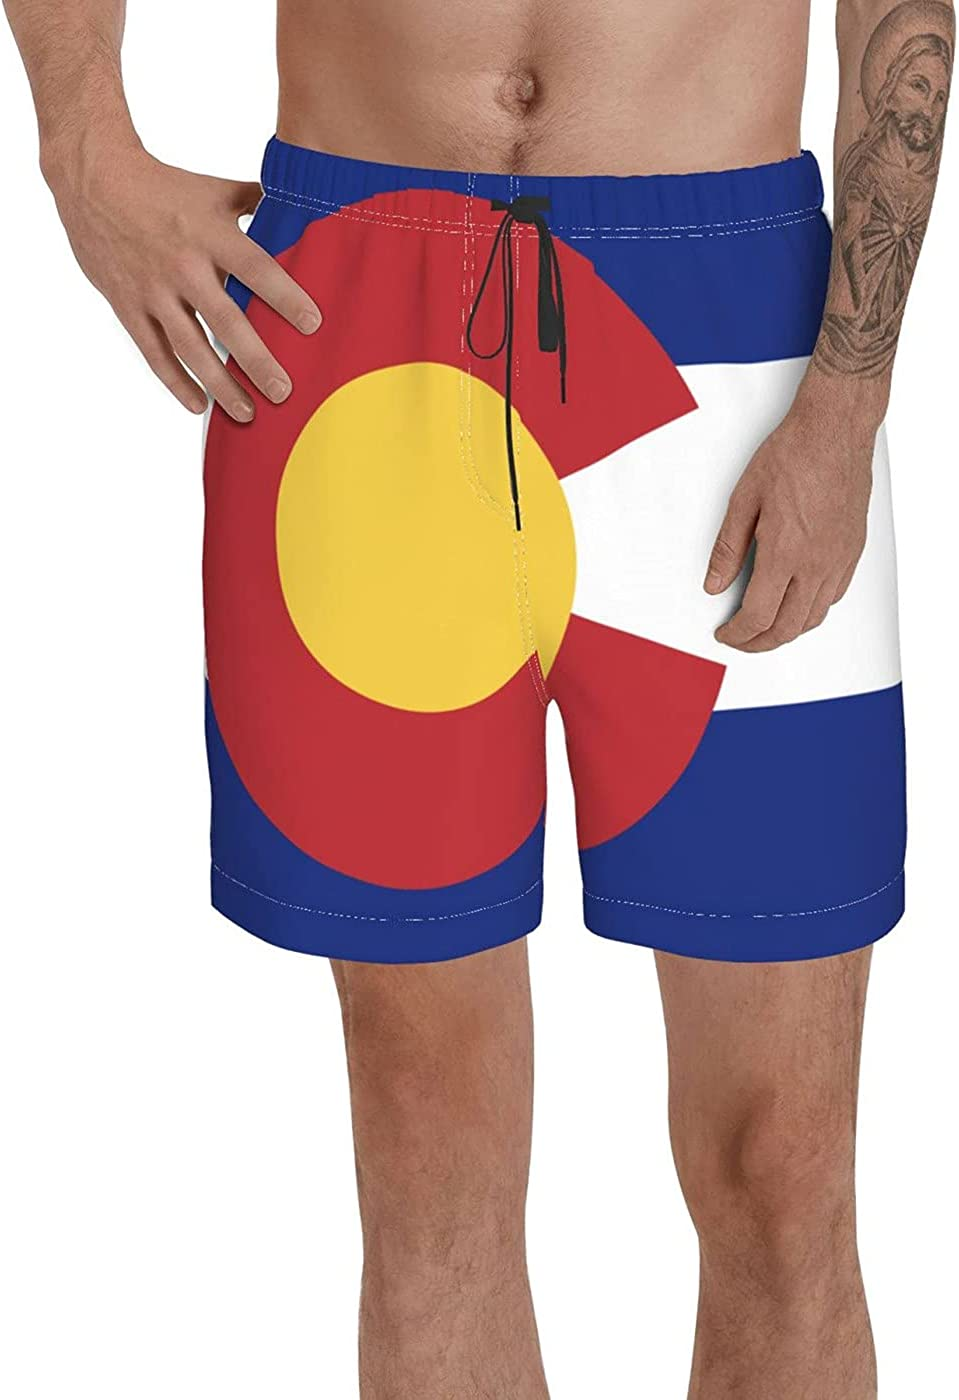 Colorado State Polyester Flag Men's 3D Printed Funny Summer Quick Dry Swim Short Board Shorts with